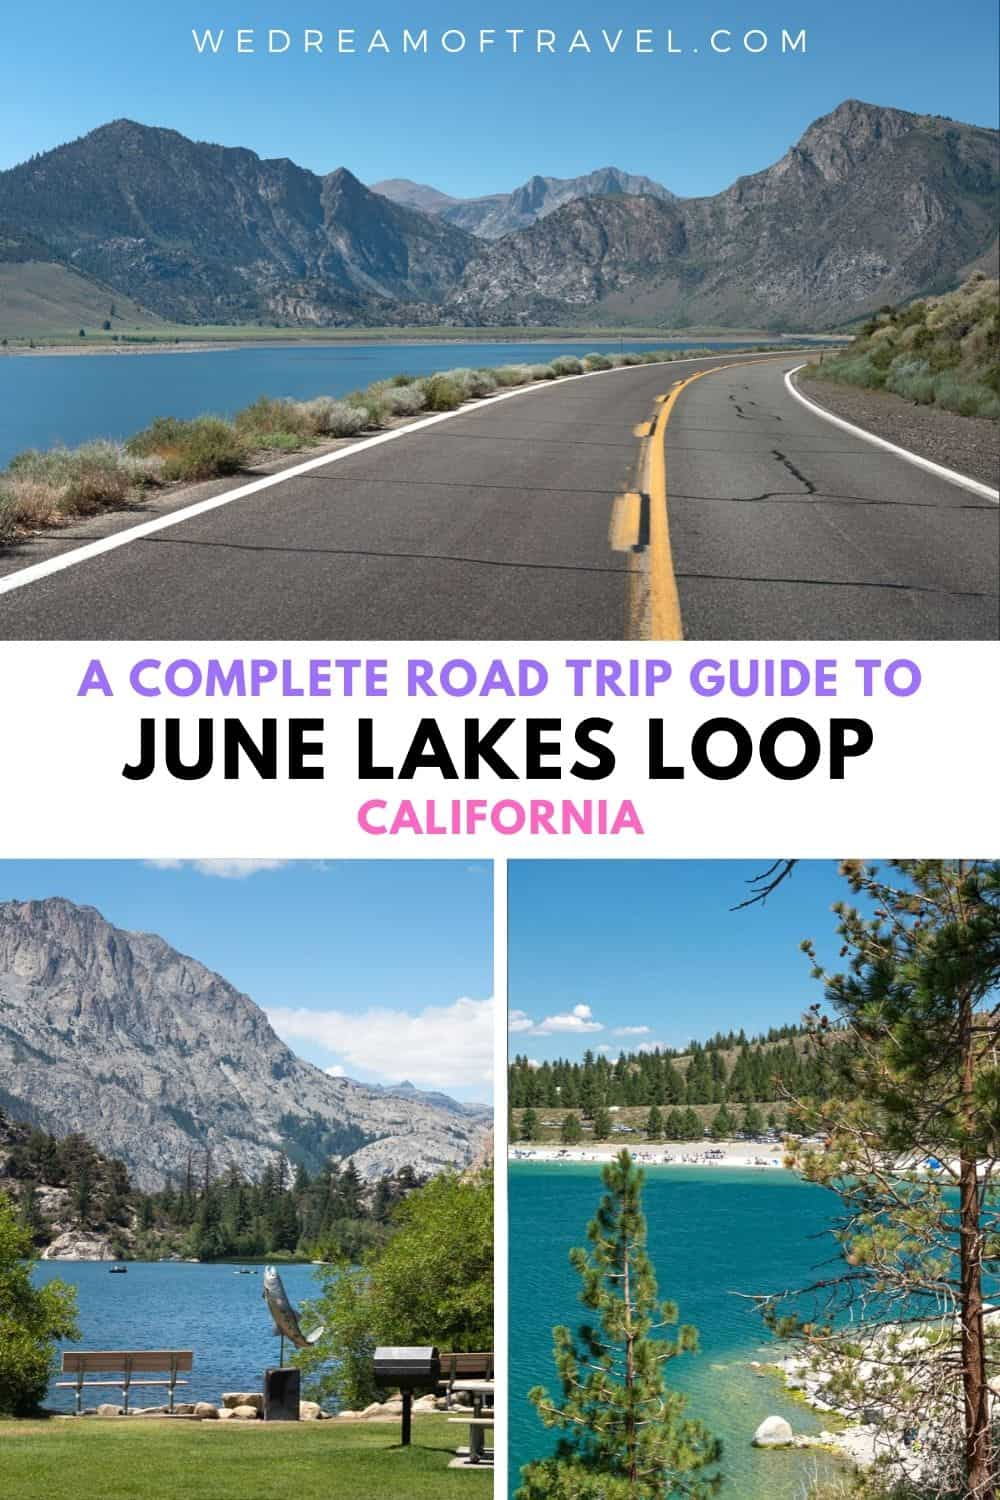 The June Lakes Loop in the Eastern Sierra Mountains is a spectacular alpine drive with shimmering lakes, hiking trails, fishing and boating, skiing, hot springs and more!  It makes for the perfect weekend getaway or scenic detour on your way to Yosemite or Mammoth Lakes, California.